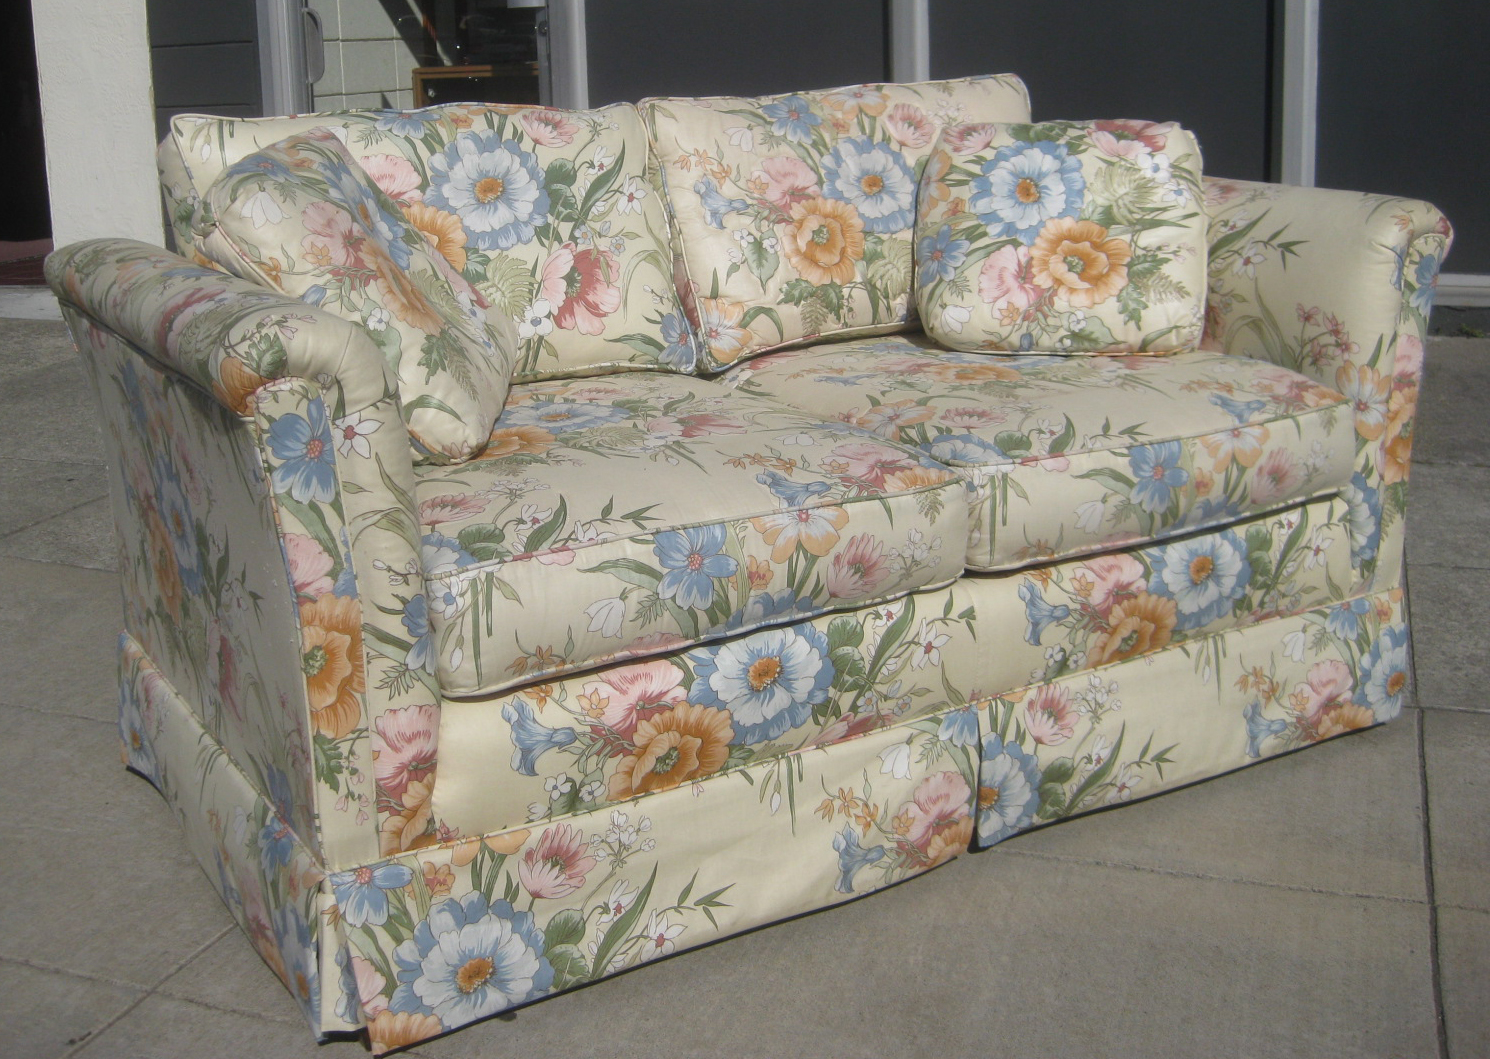 Uhuru Furniture Collectibles Sold Floral Loveseat 40